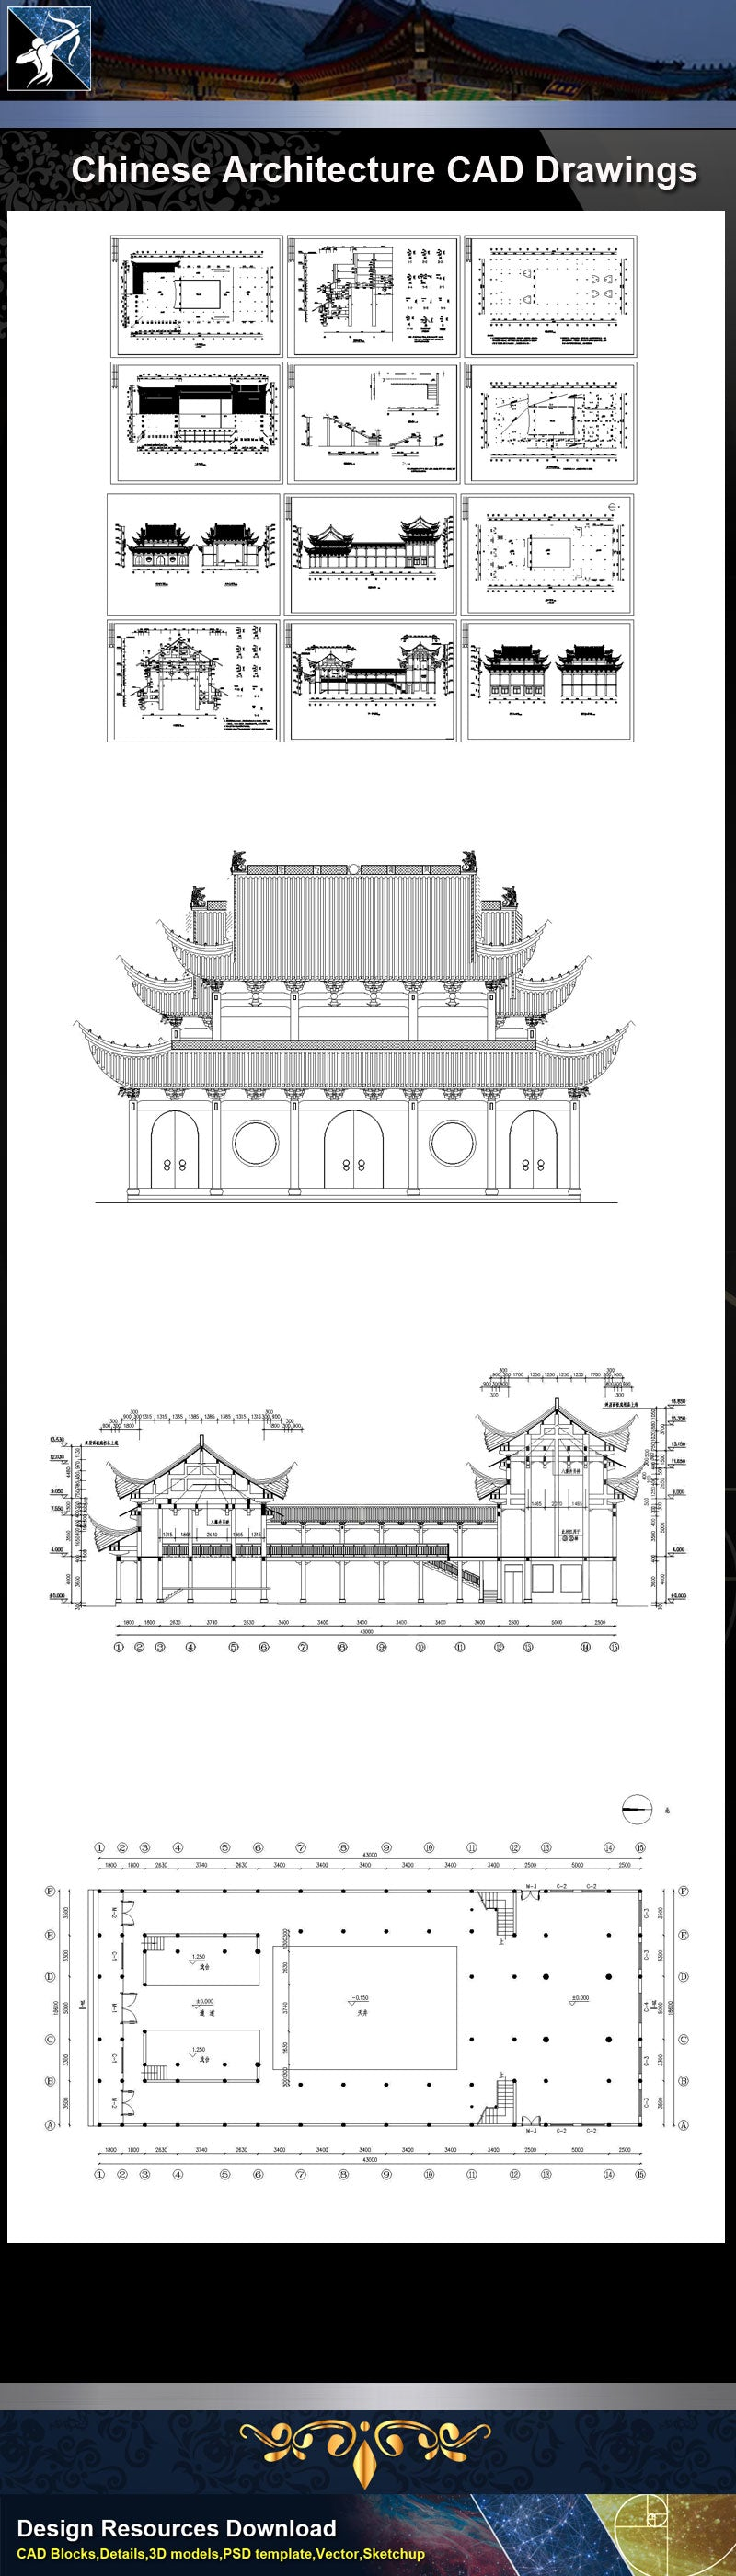 ★Chinese Architecture CAD Drawings-Chinese Architecture Design